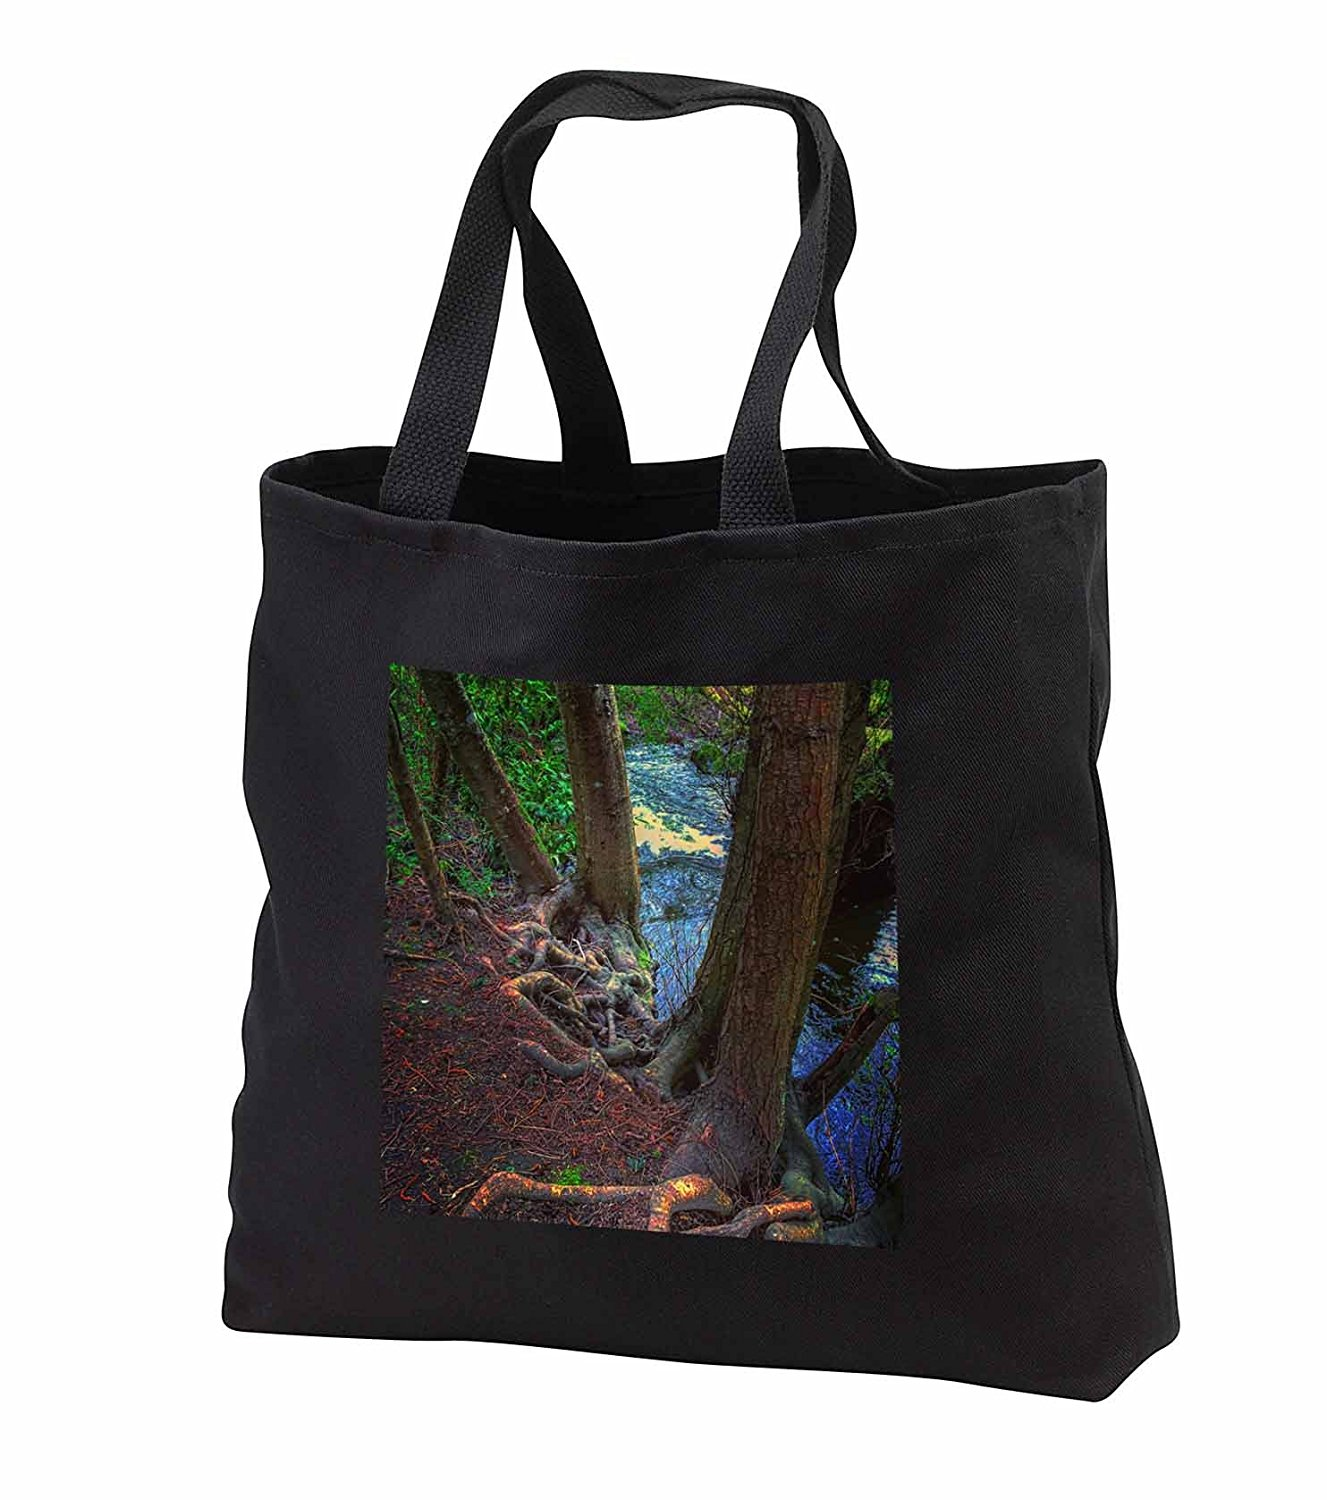 tb_245690 DYLAN SEIBOLD - PHOTOGRAPHY - TREE ROOT RIVER - Tote Bags